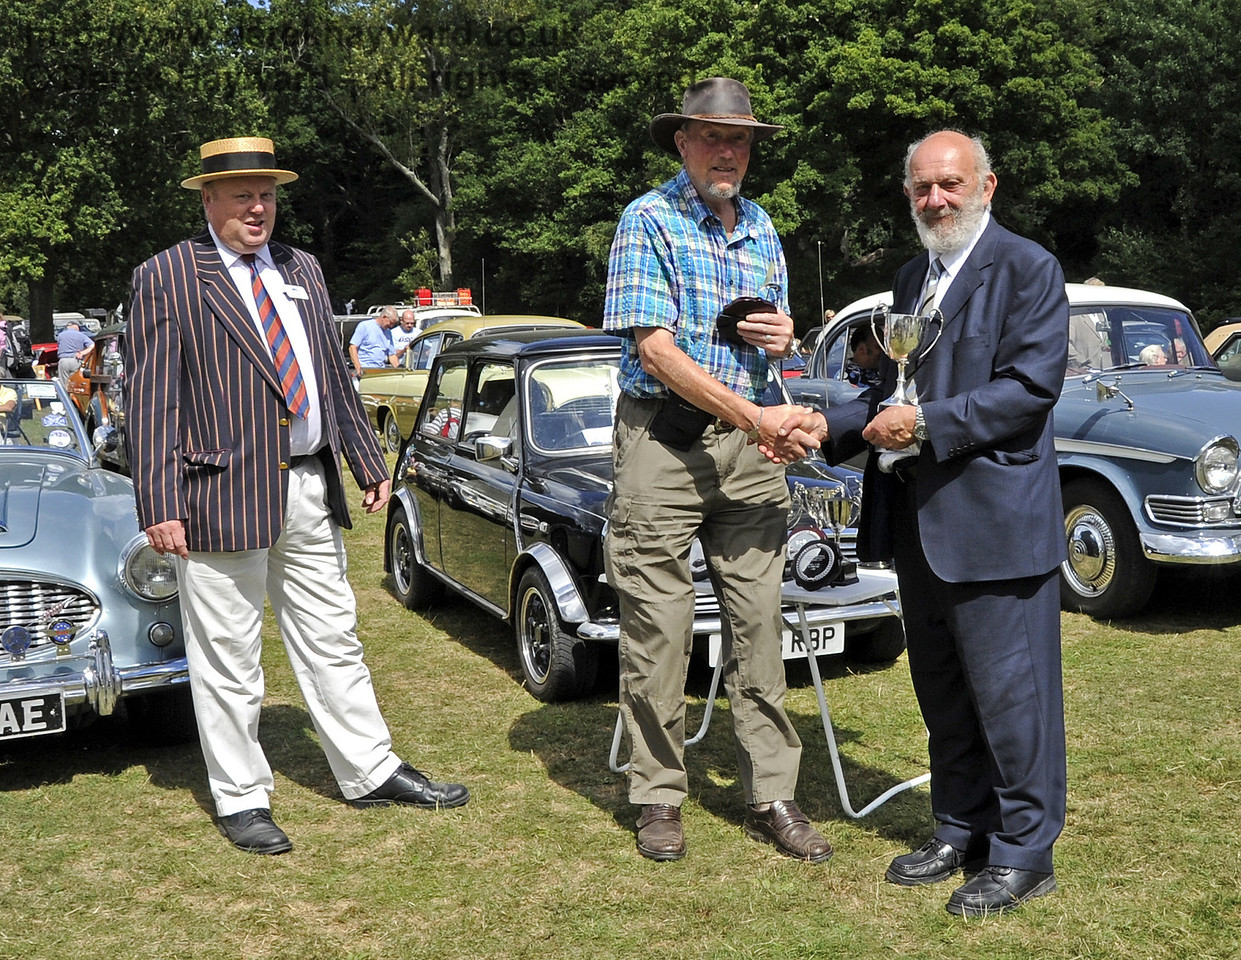 The Southdown Cup for Best in Show was awarded to Steven Green for his Mini Rio, L363RBP.  Vintage Transport Weekend, Horsted Keynes, 11.08.2013  7859